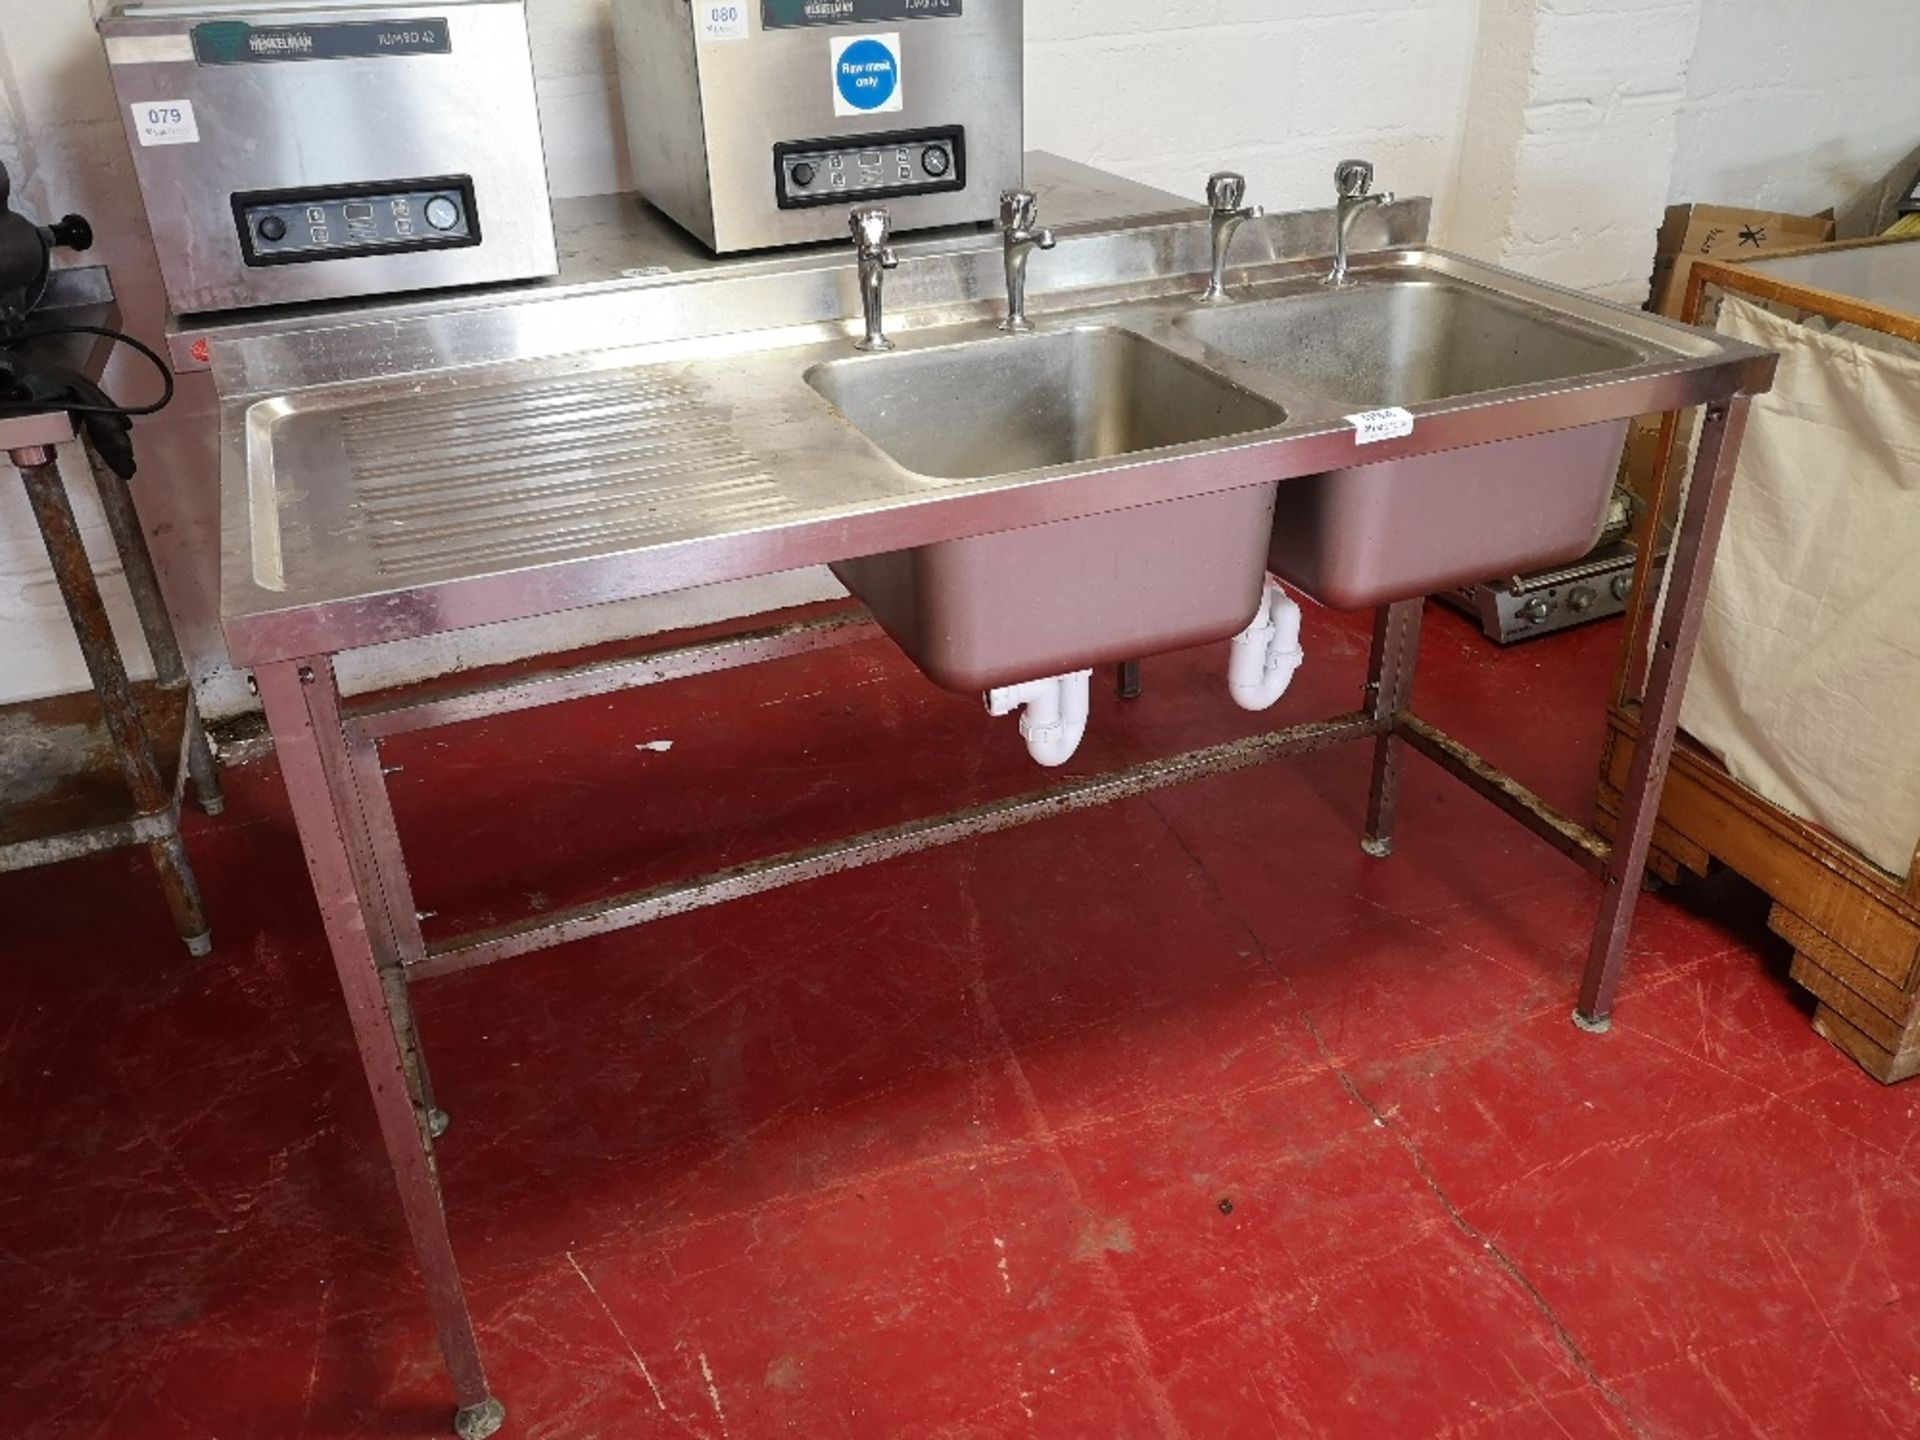 Stainless Steel Double Sink Unit - Image 2 of 3